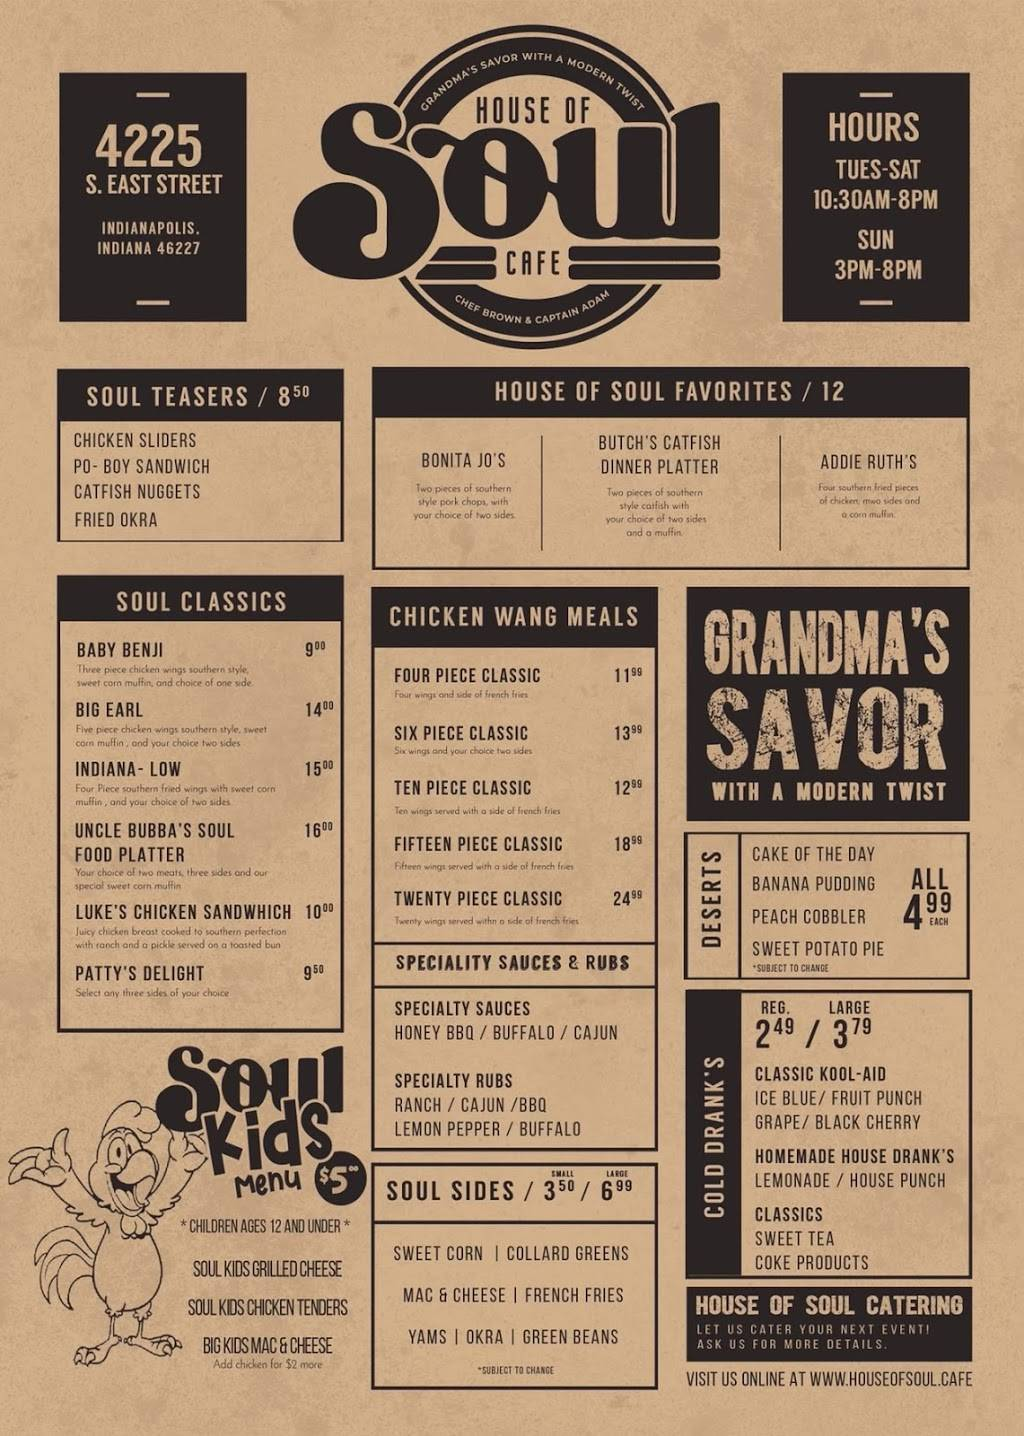 House of Soul Cafe | restaurant | 4225 S East St, Indianapolis, IN 46227, USA | 3177553539 OR +1 317-755-3539